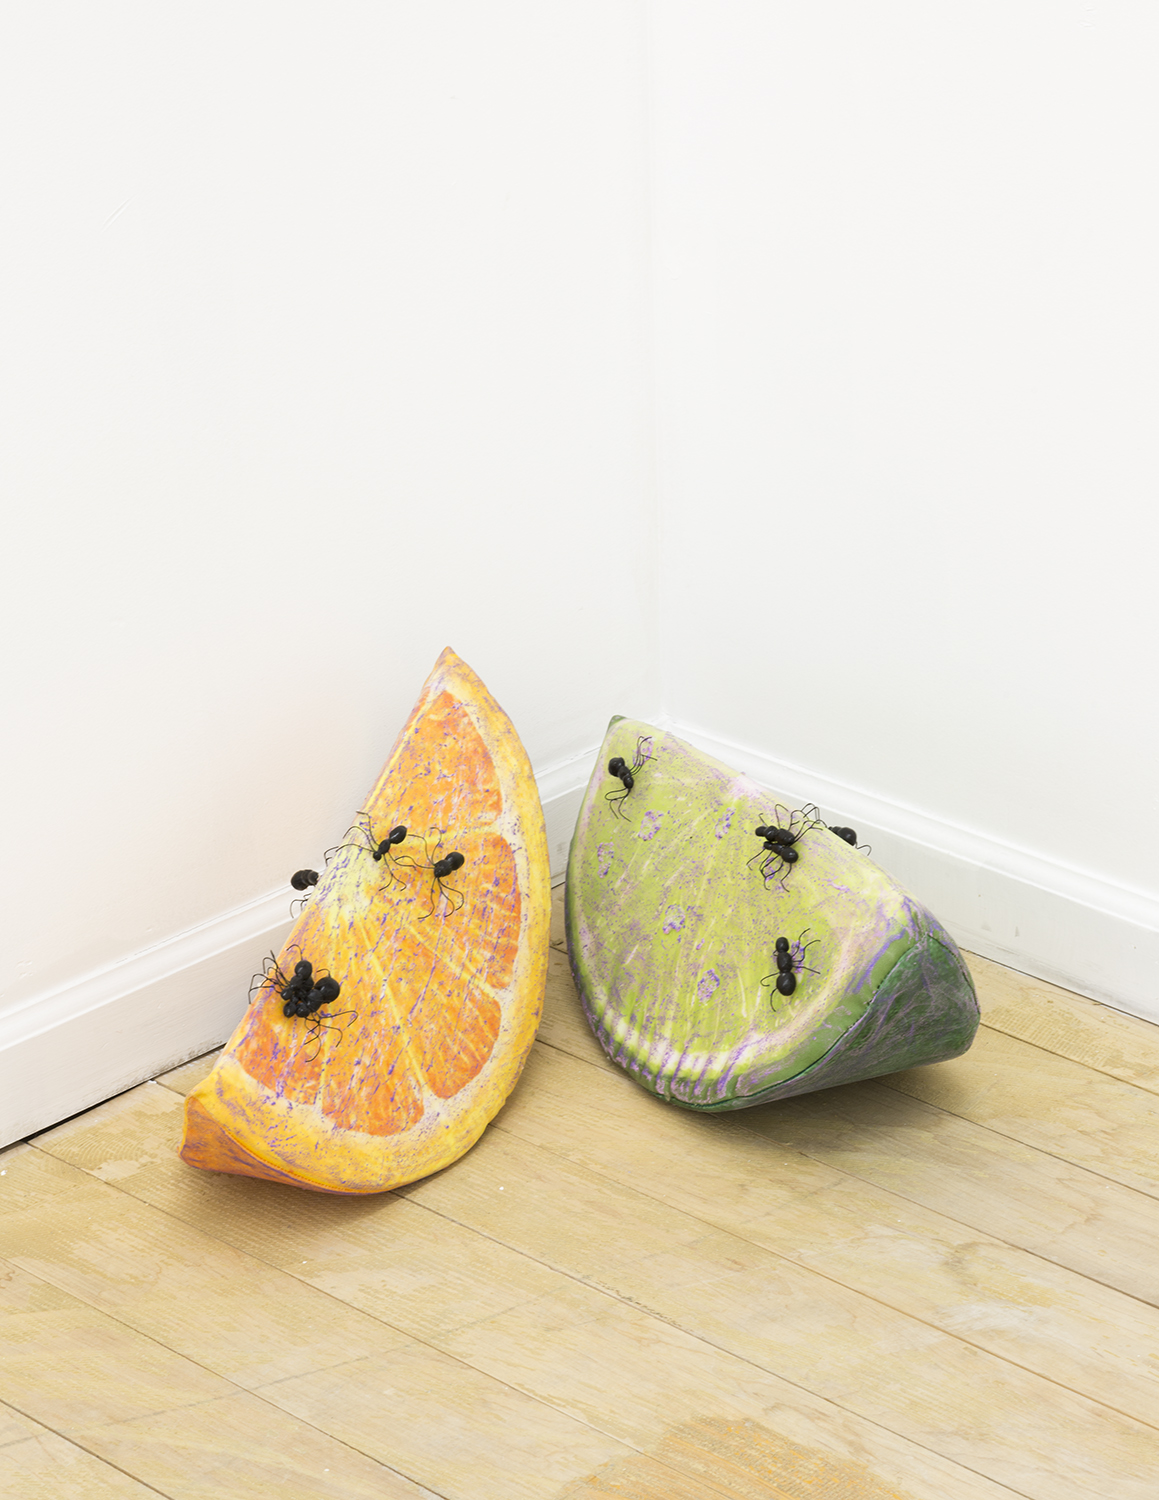 Dirty Slice (Orange) and (Lime) , 2018, mixed media on foam pillows, dimensions variable